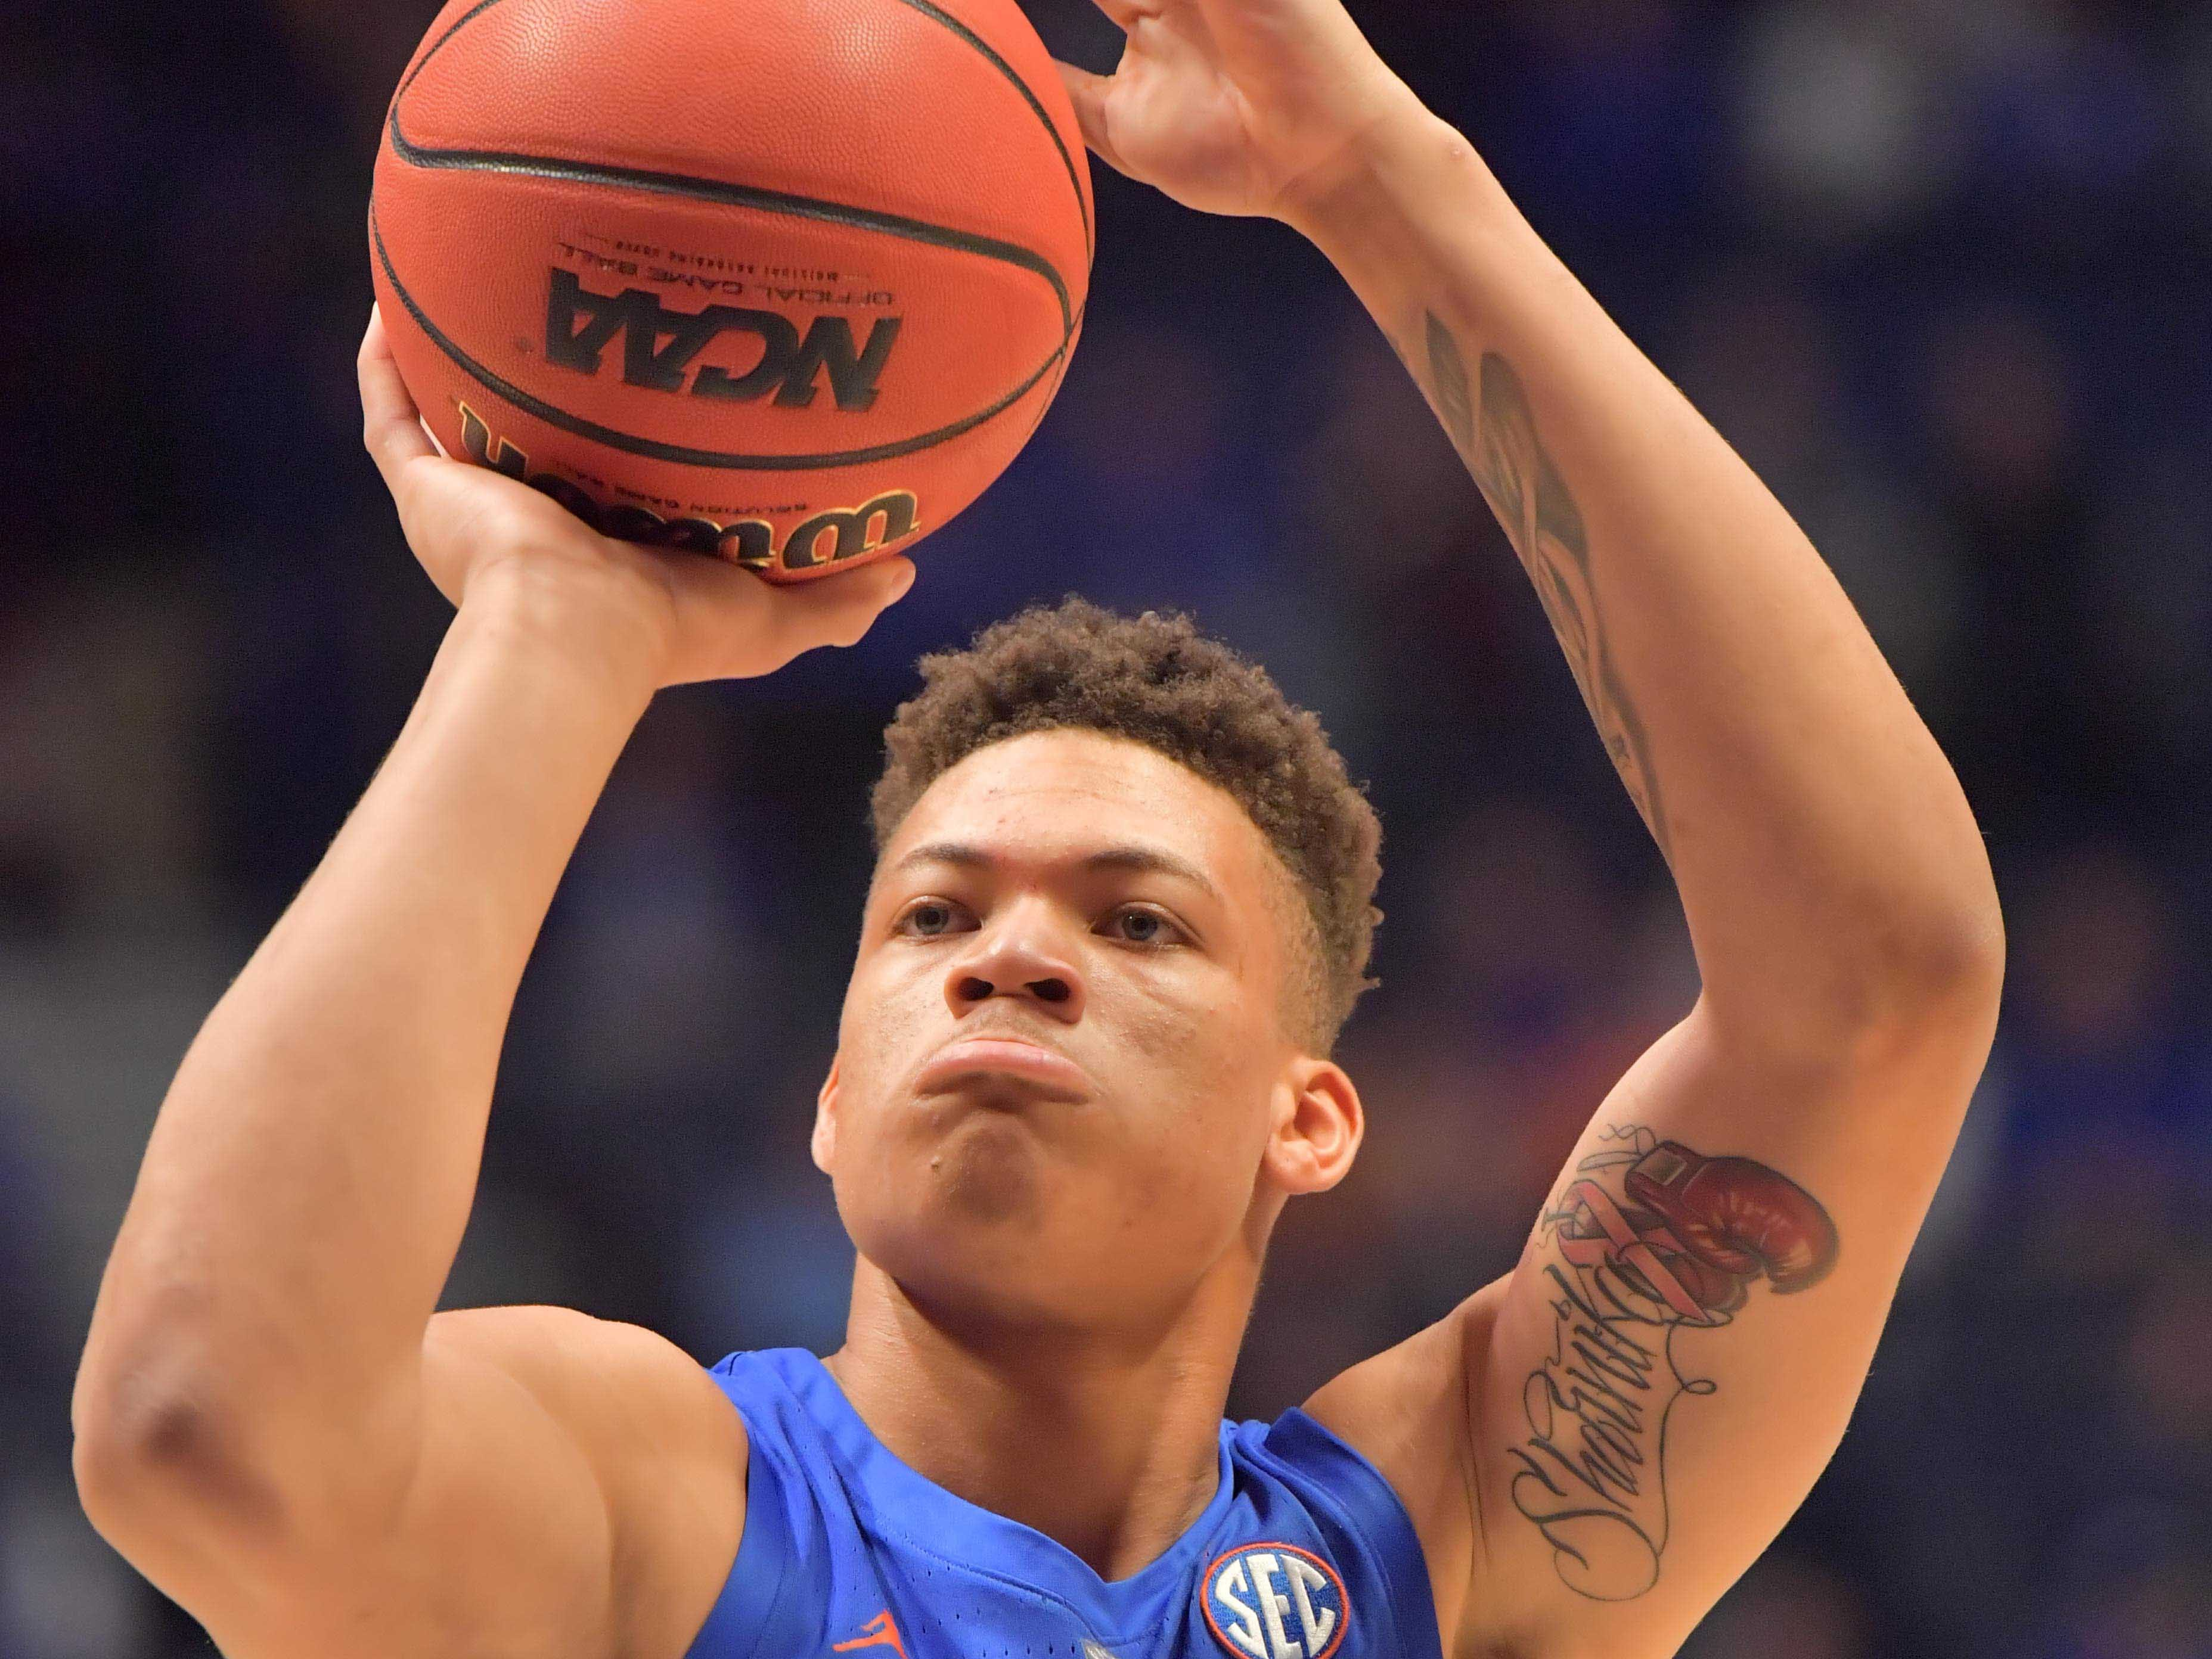 Mar 15, 2019; Nashville, TN, USA; Florida Gators forward Keyontae Johnson (11) shoots a free throw against the LSU Tigers during the first half of game seven in the SEC conference tournament at Bridgestone Arena. Mandatory Credit: Jim Brown-USA TODAY Sports